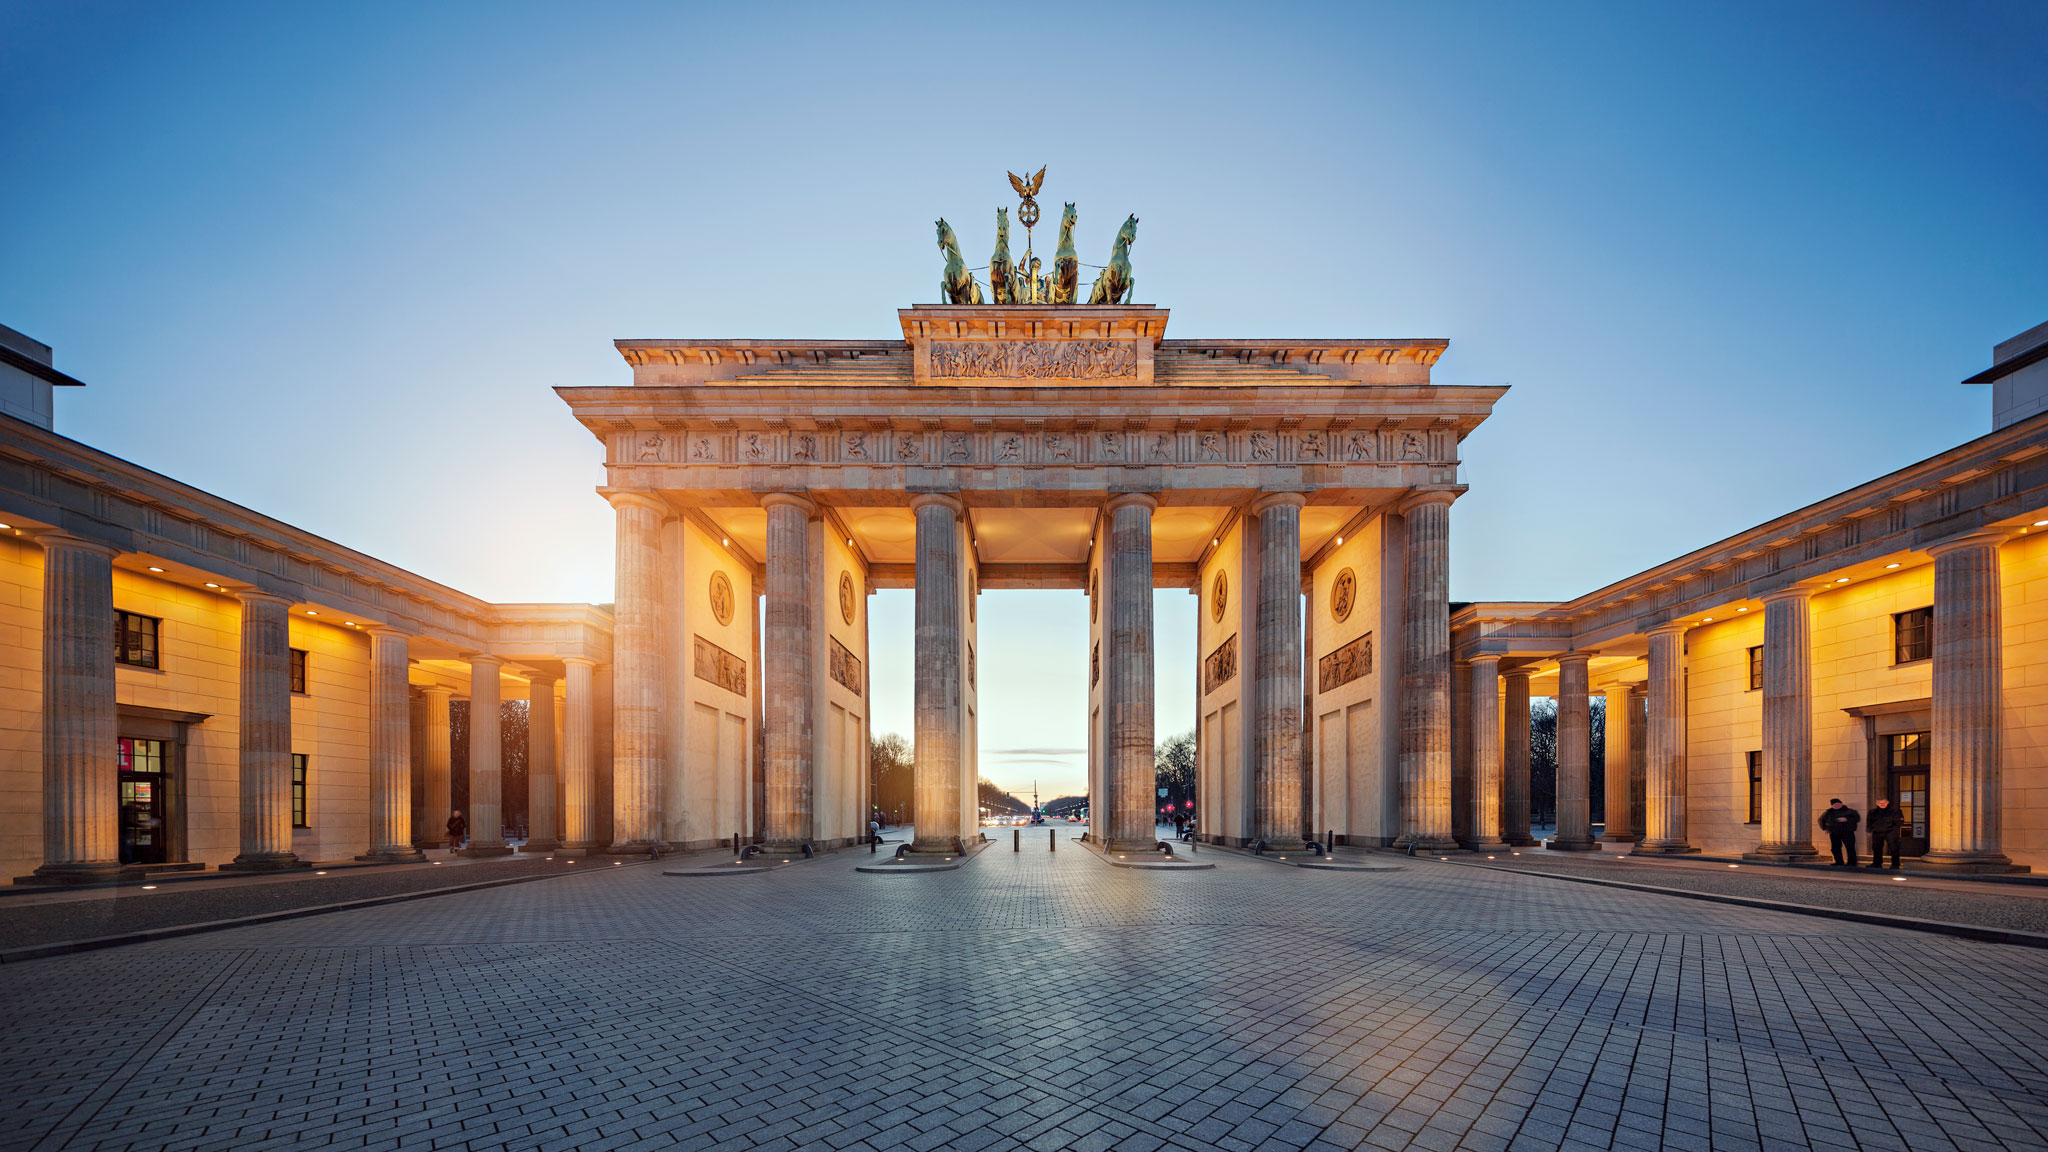 Brandenburg Gate, Berlin, Germany - Caparol Sylitol facade paint